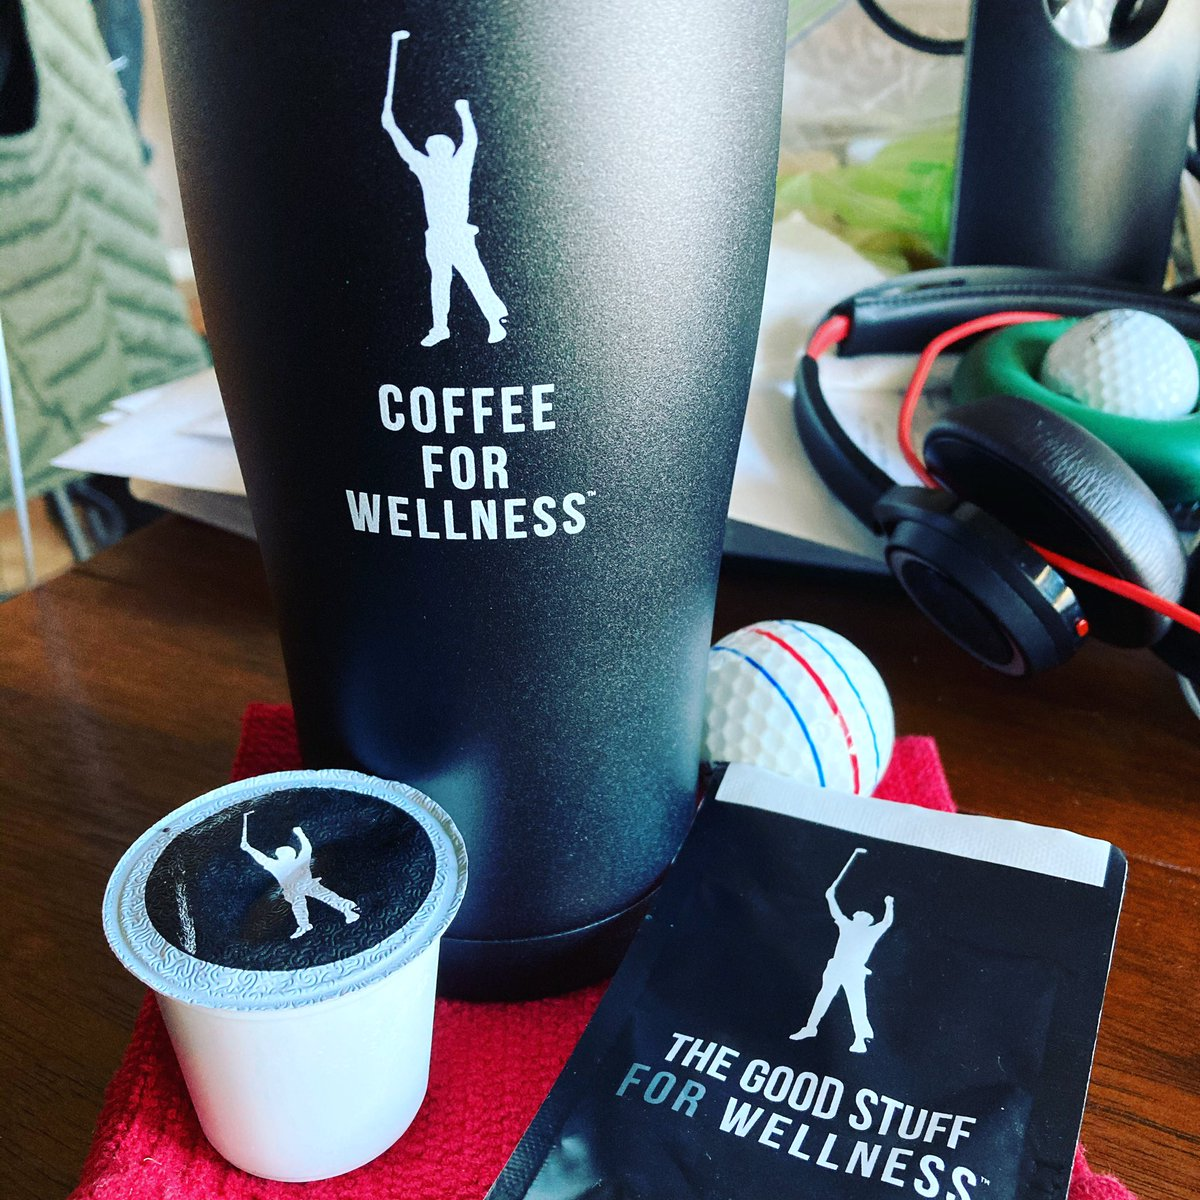 @ForWellness wow this is good!  Two big thumbs up!  Great tasting and smooth!  Thanks for getting this out @PhilMickelson